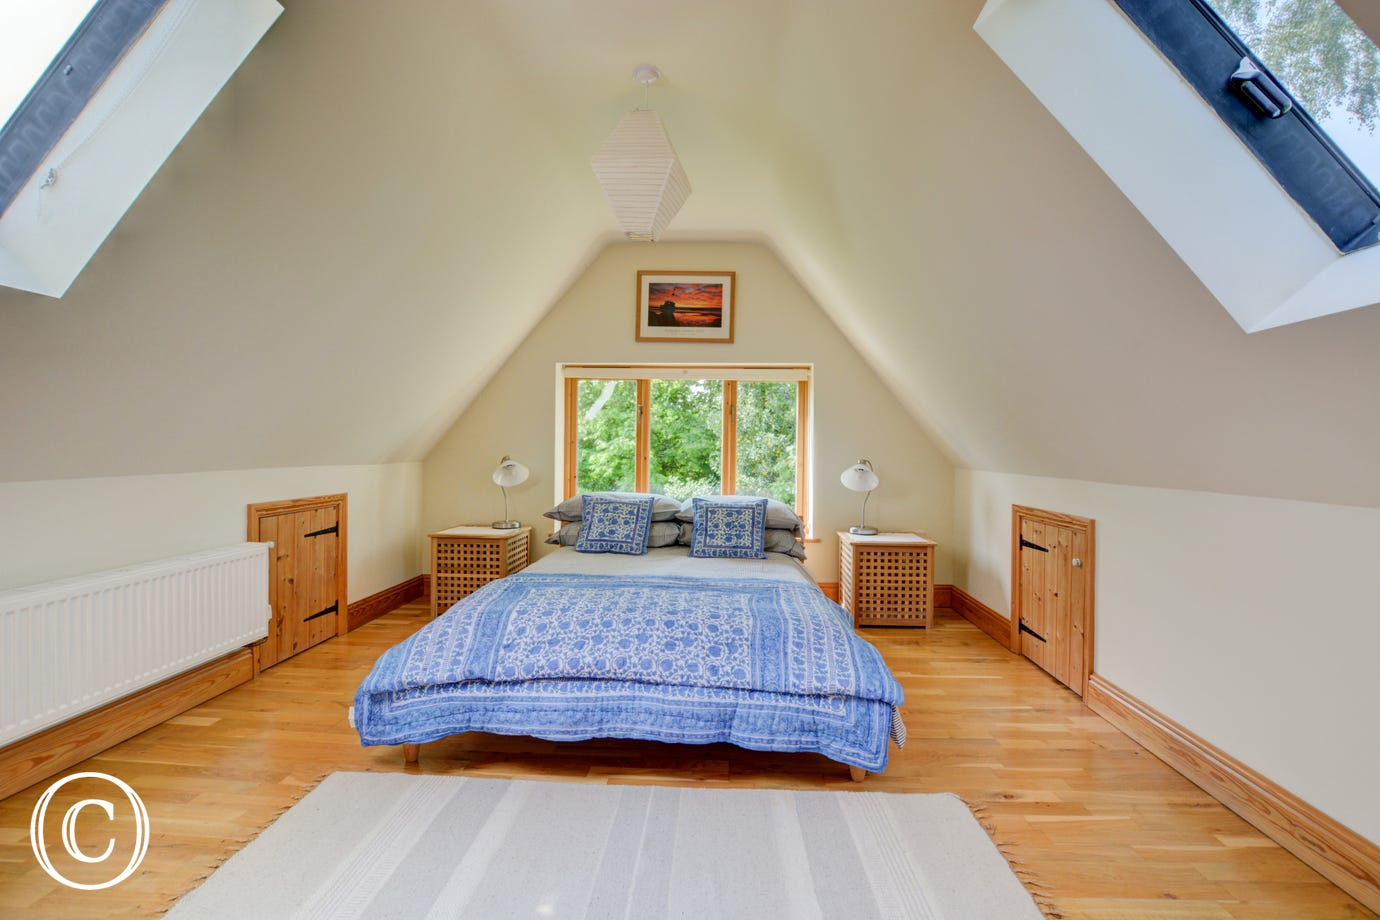 The double bedroom has sloping ceiling and a large picture window.